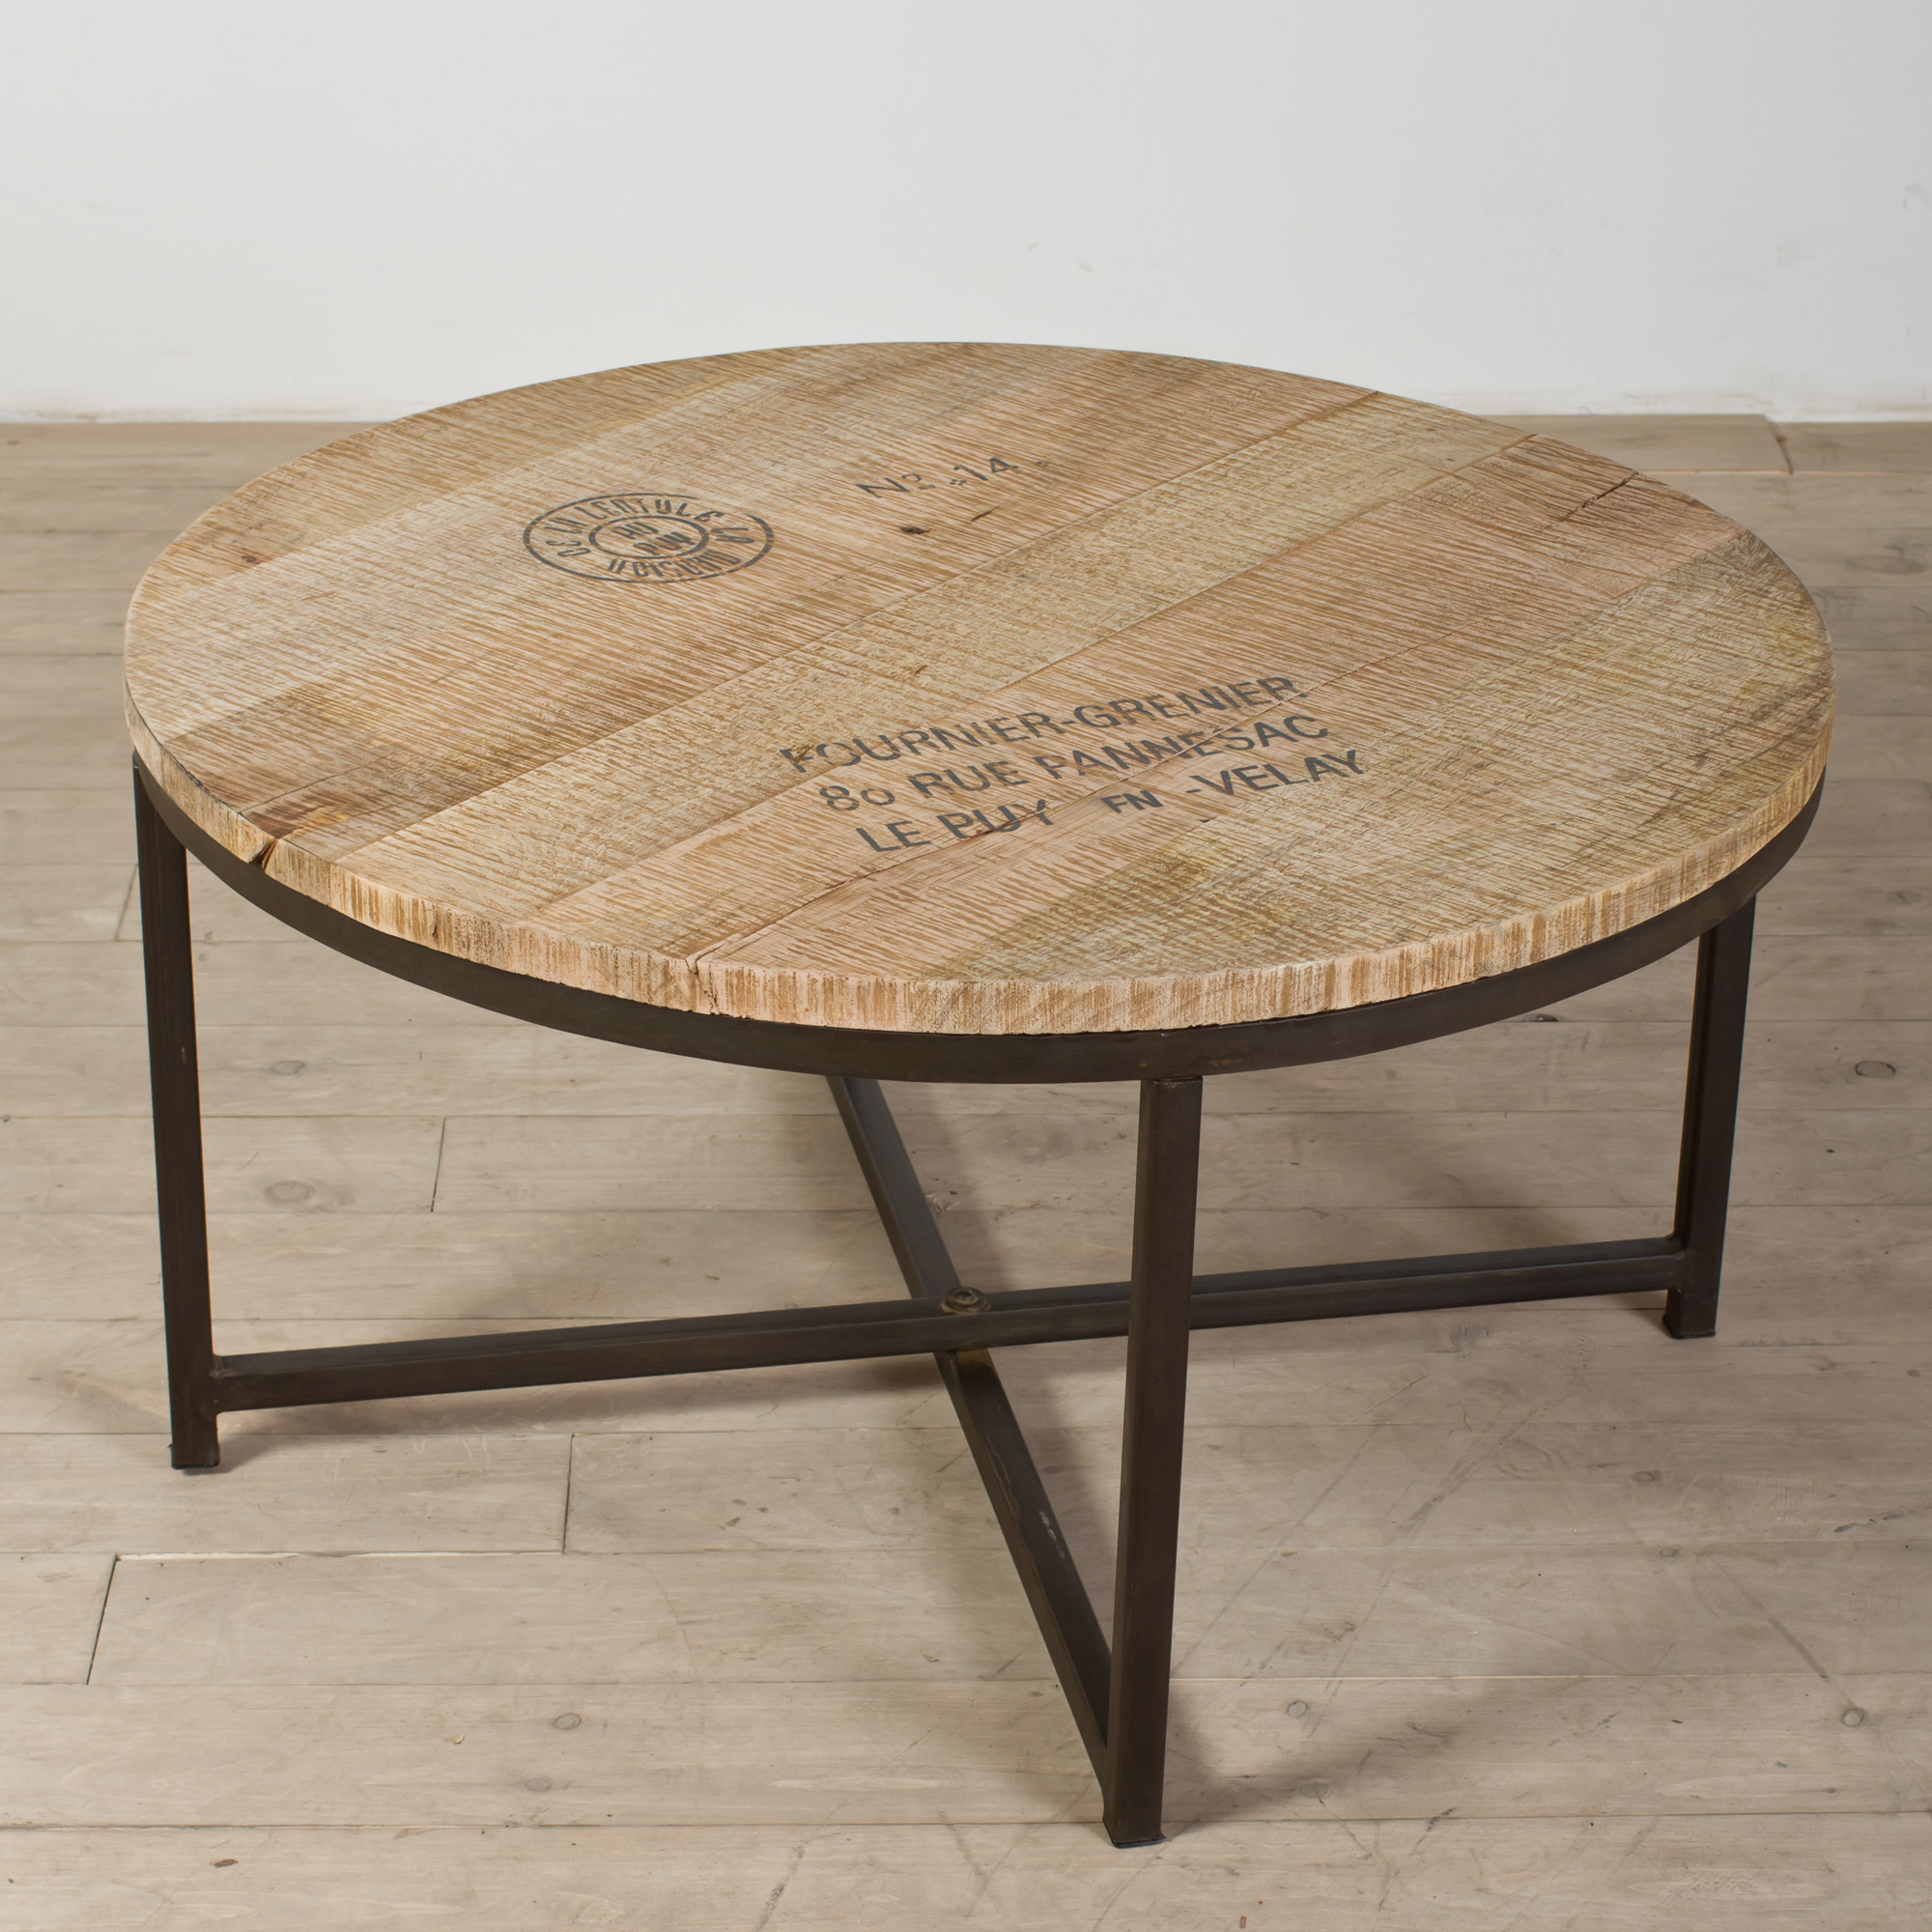 Artisan Coffee Table Design Well Spent